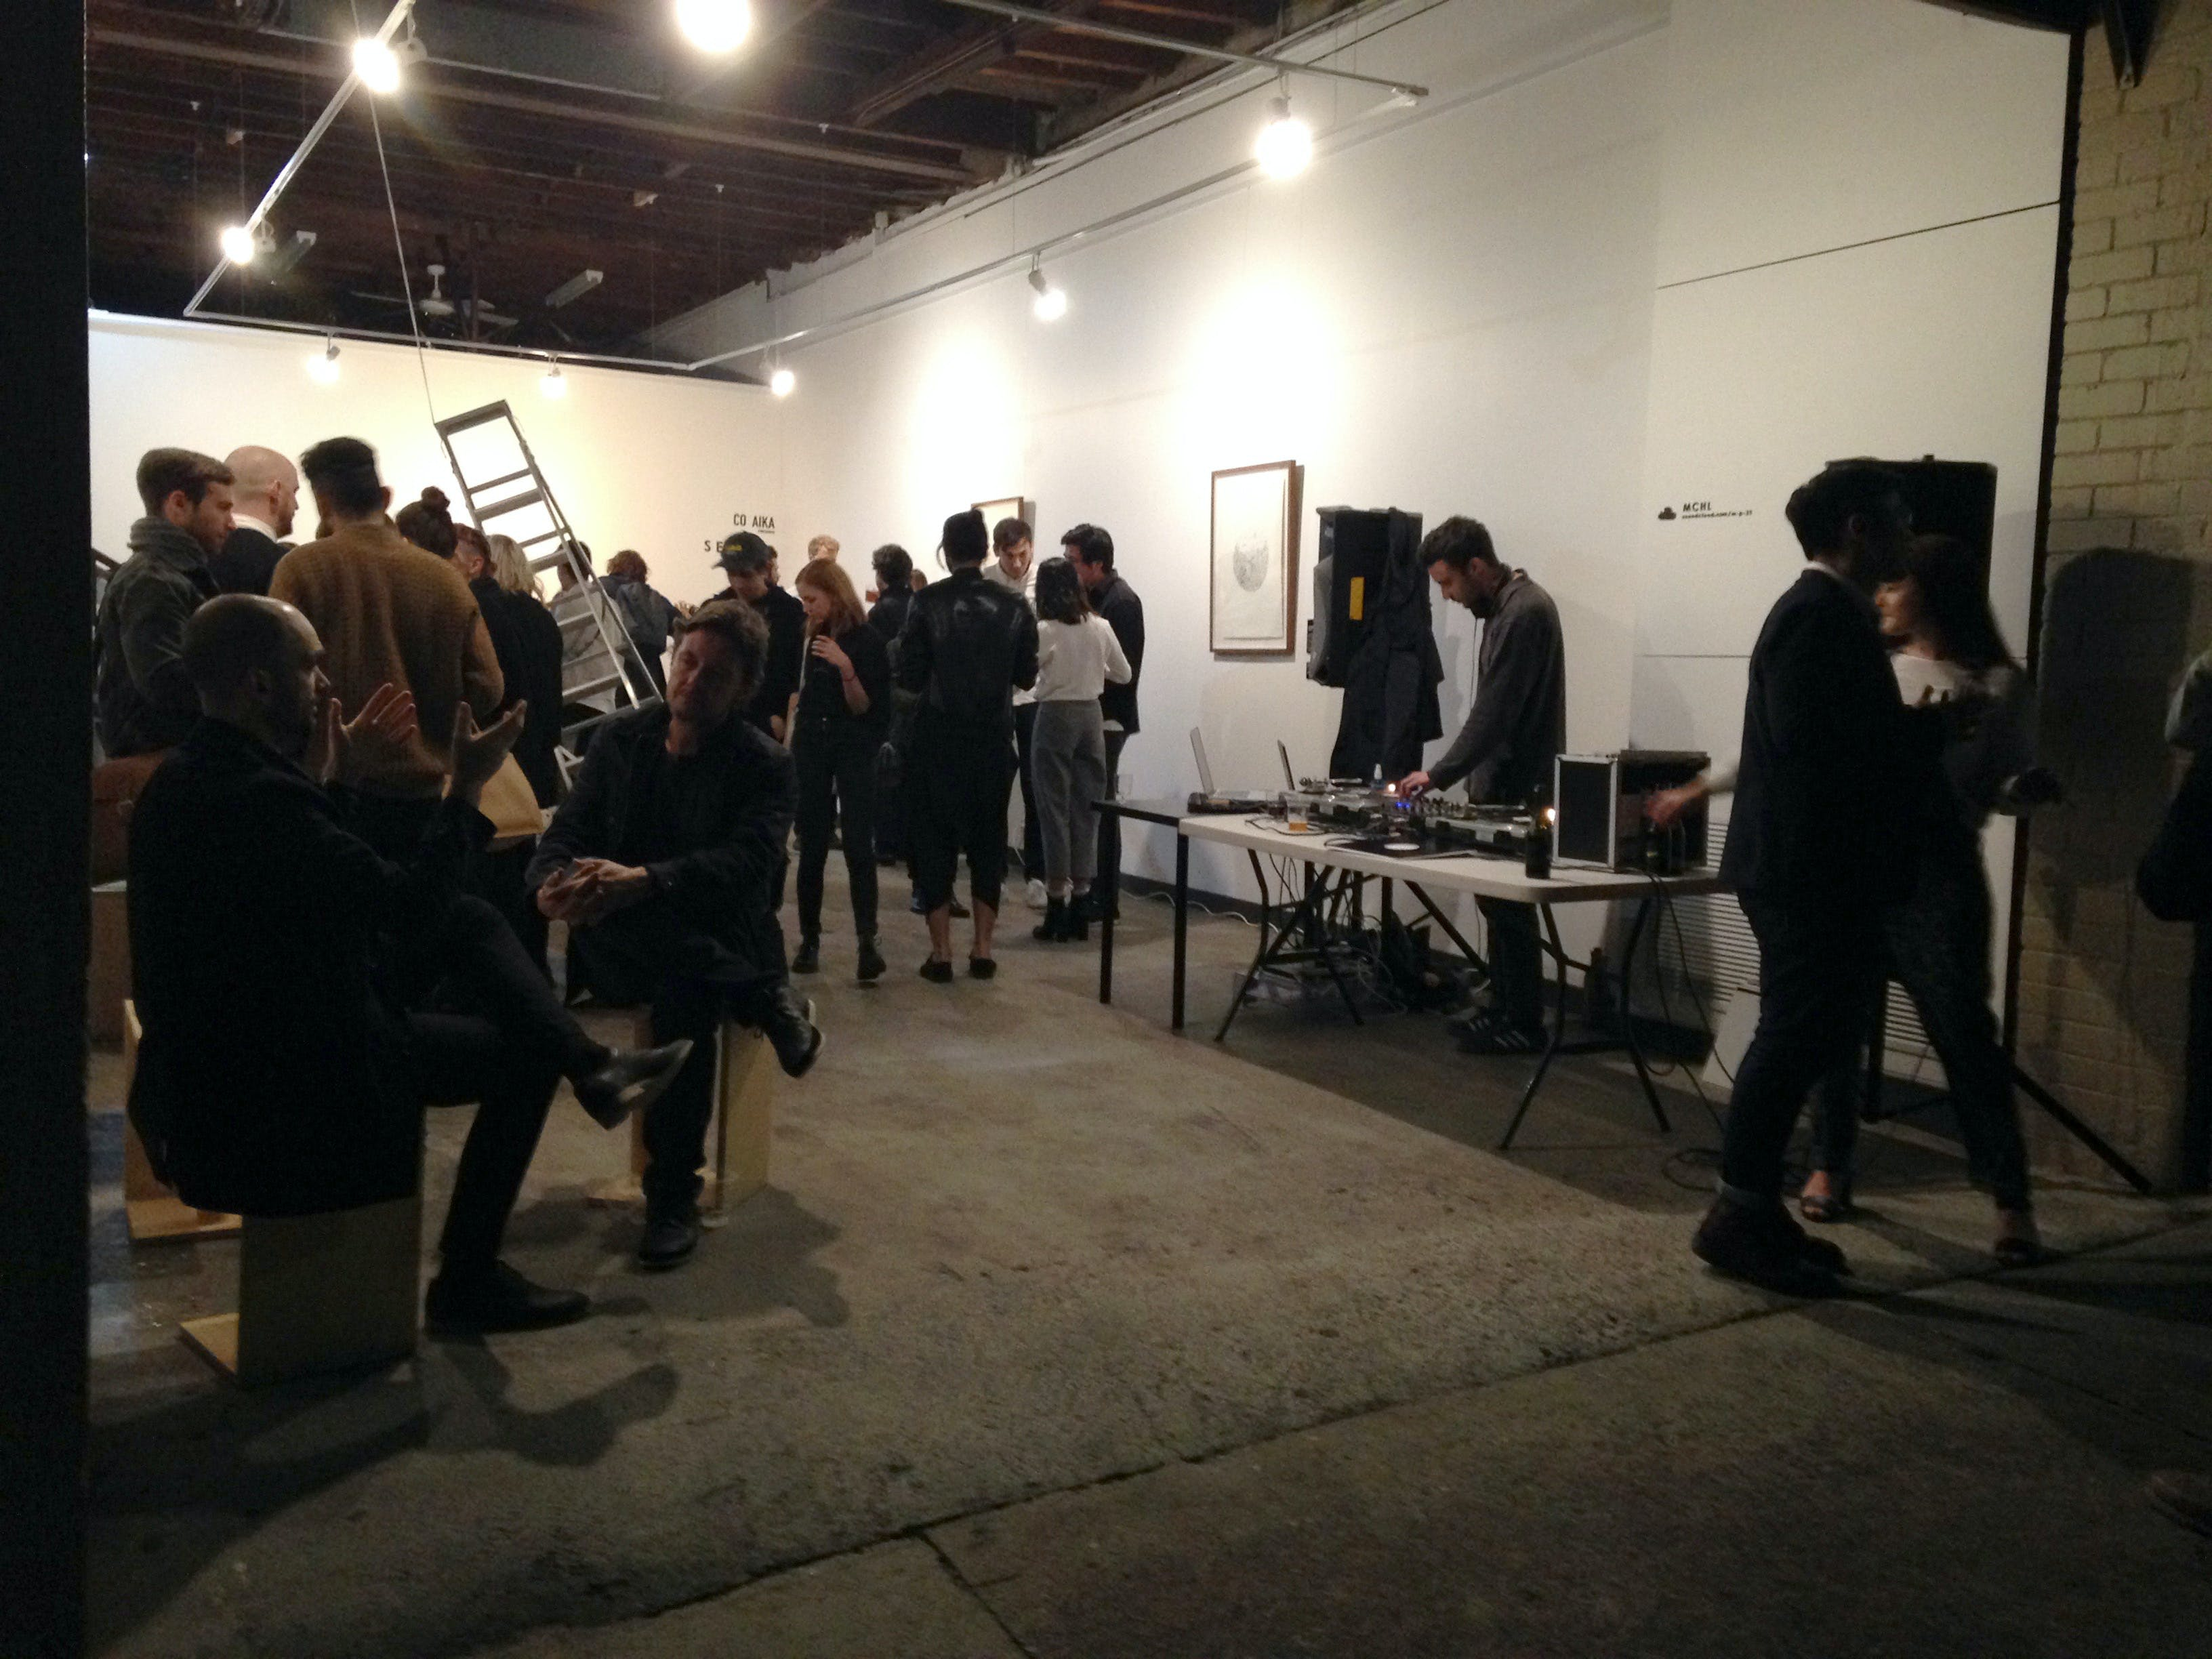 Multi-use loading dock space, perfect for a pop up shop, image 1